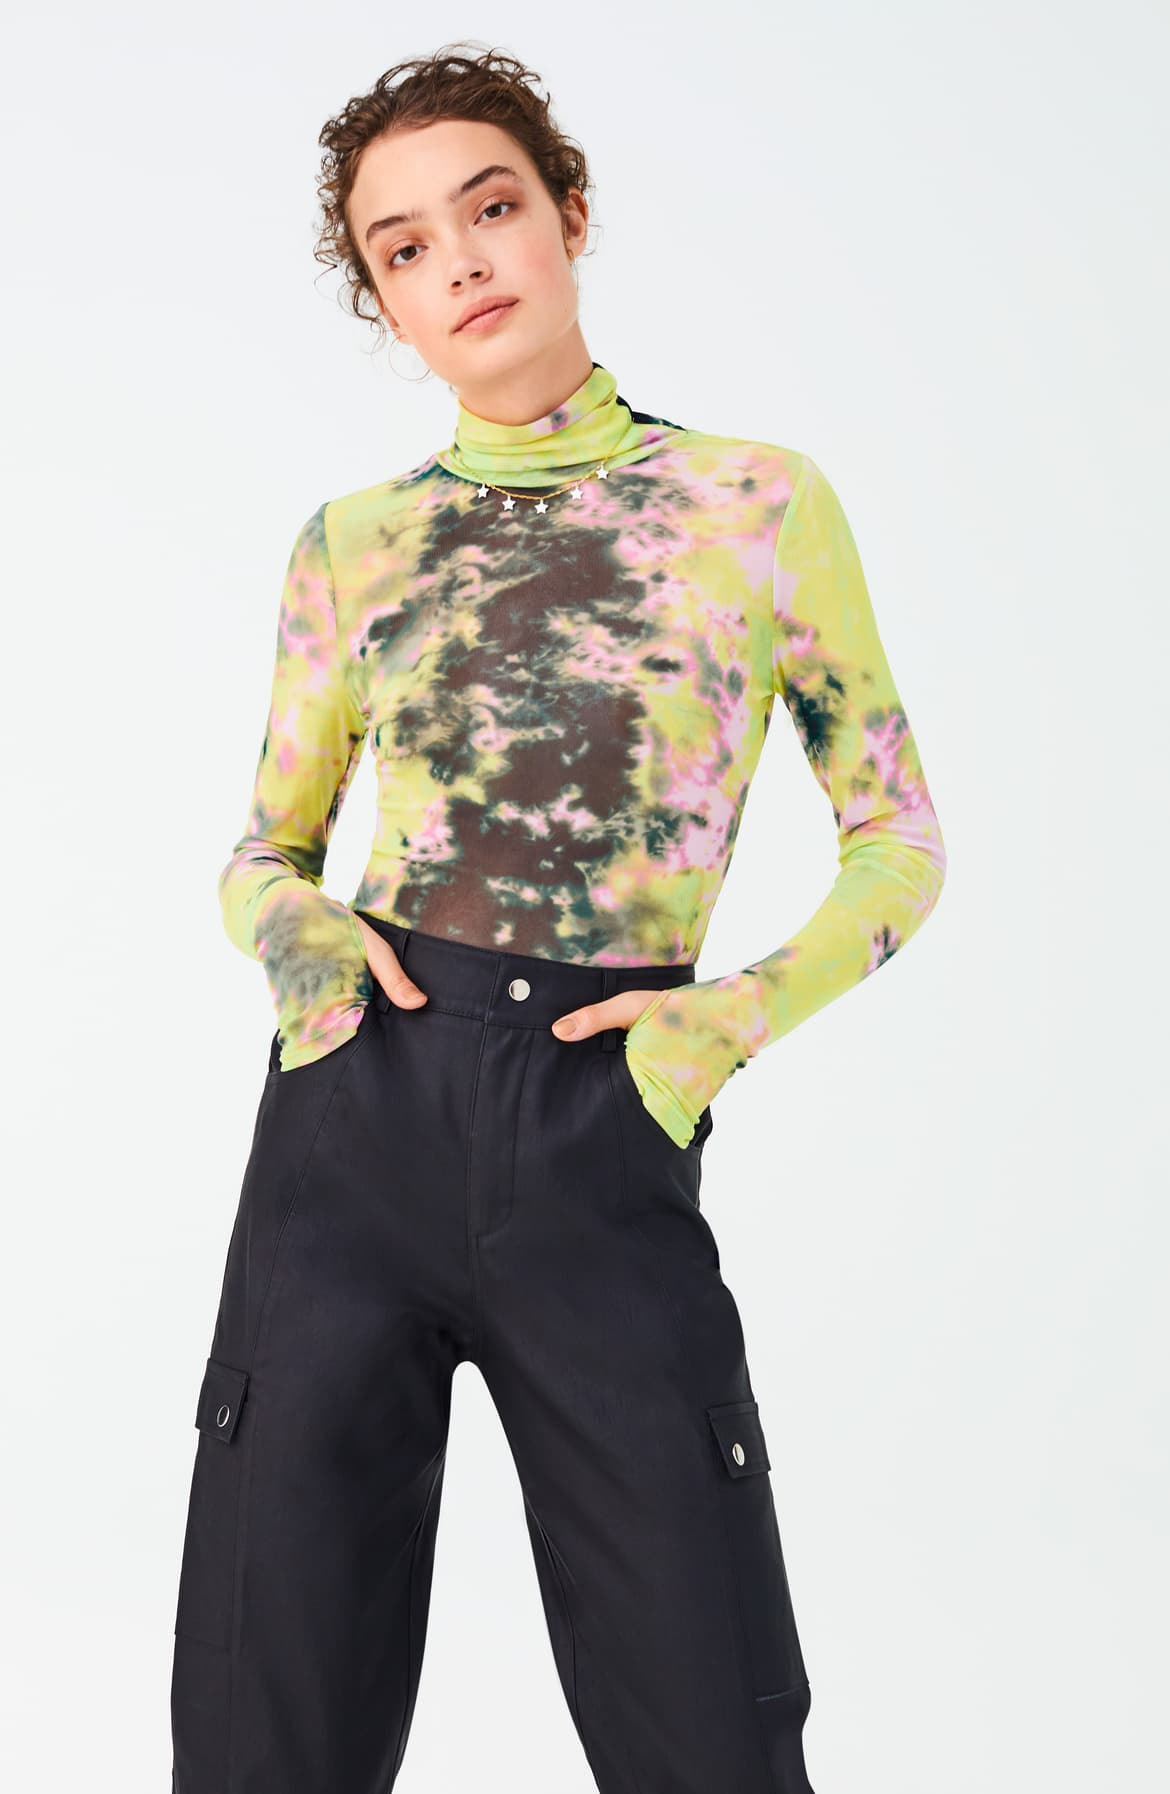 The 1980's were a decade of excess with big shoulders, statement prints and bright neon colors. These trends are making a comeback – in an epic fashion.  We've rounded up some ways you can rock this 'totally tubular' trend, without going full on 'Stranger Things'. (Image: Nordstrom){ }